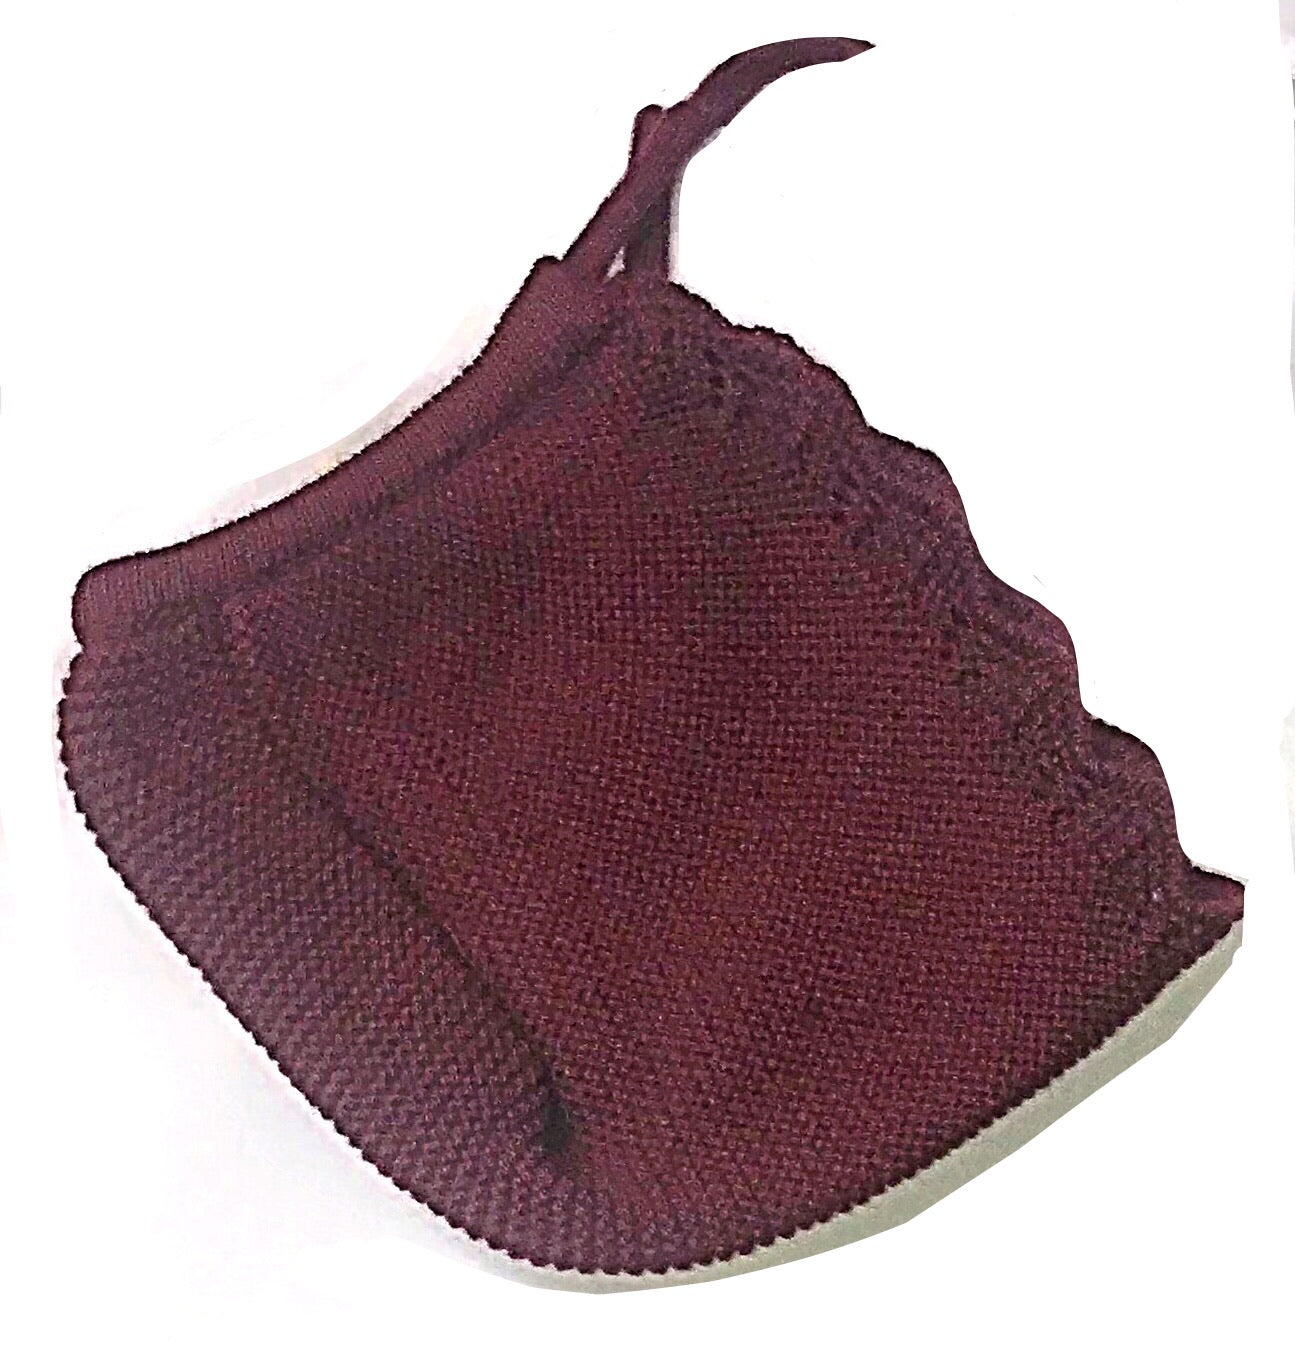 Knitted 3 piece jam pants set Burgundy - Roo's Online Shop - children's clothes - Mary Jane shoes -